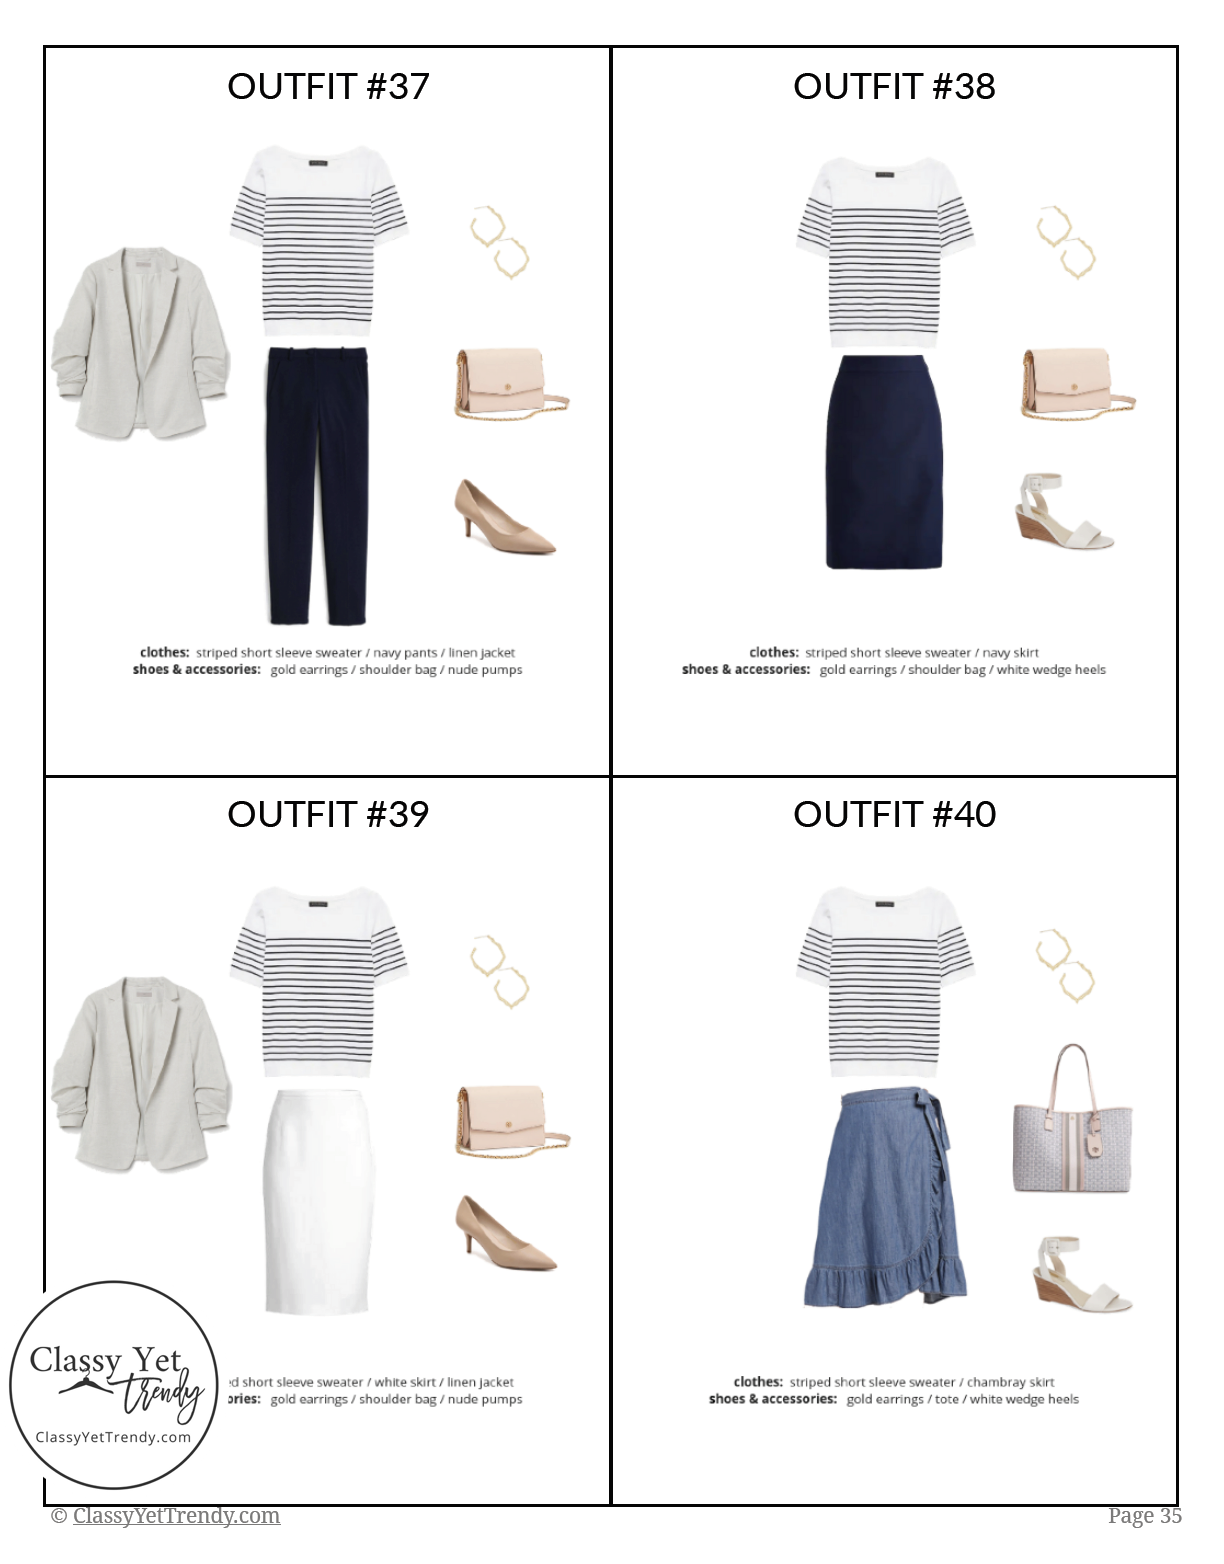 Workwear Capsule Wardrobe Summer 2019 - page 35